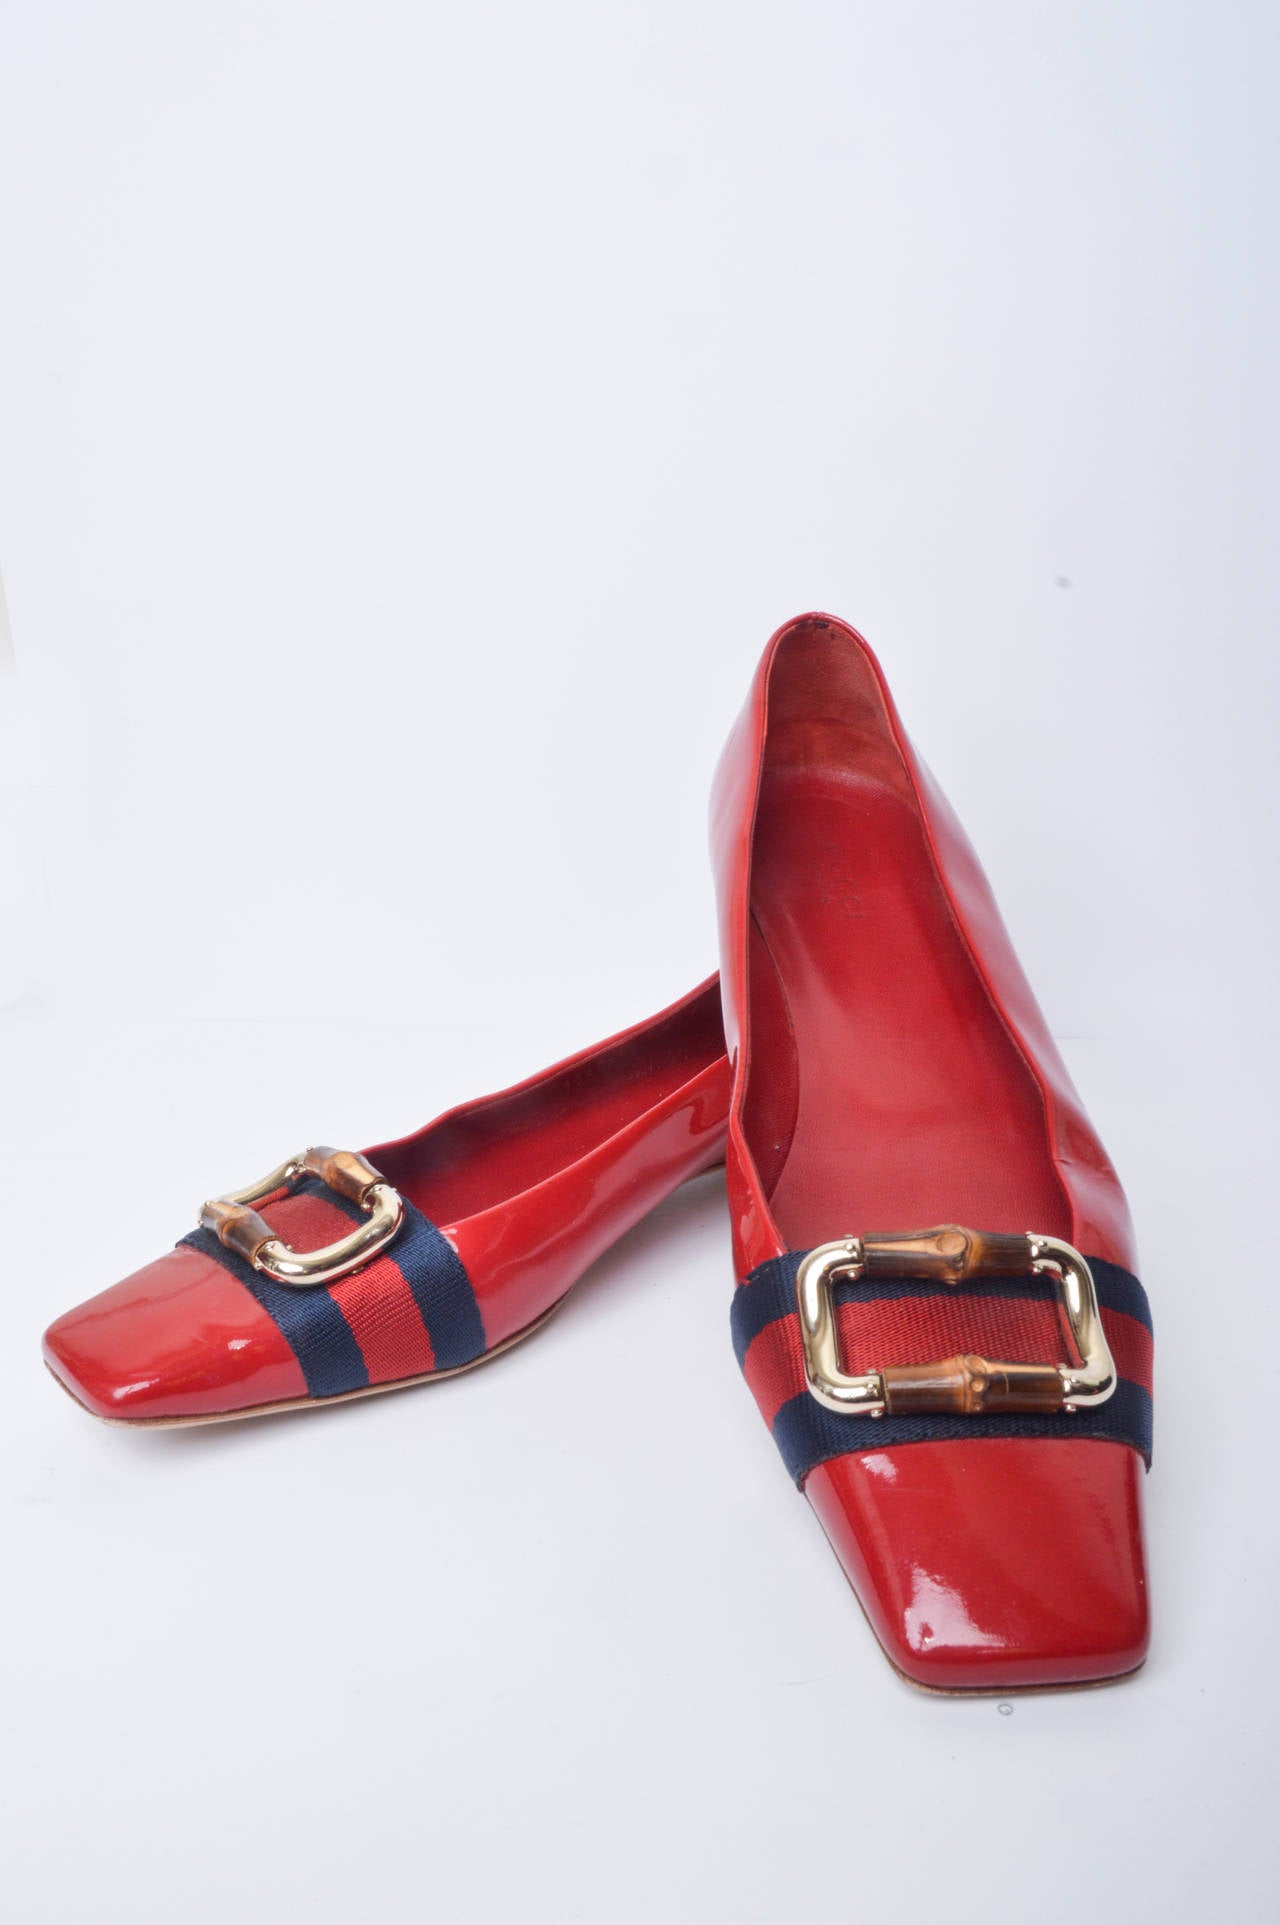 Gucci Red Patent Leather Mod Flats Size 8 2